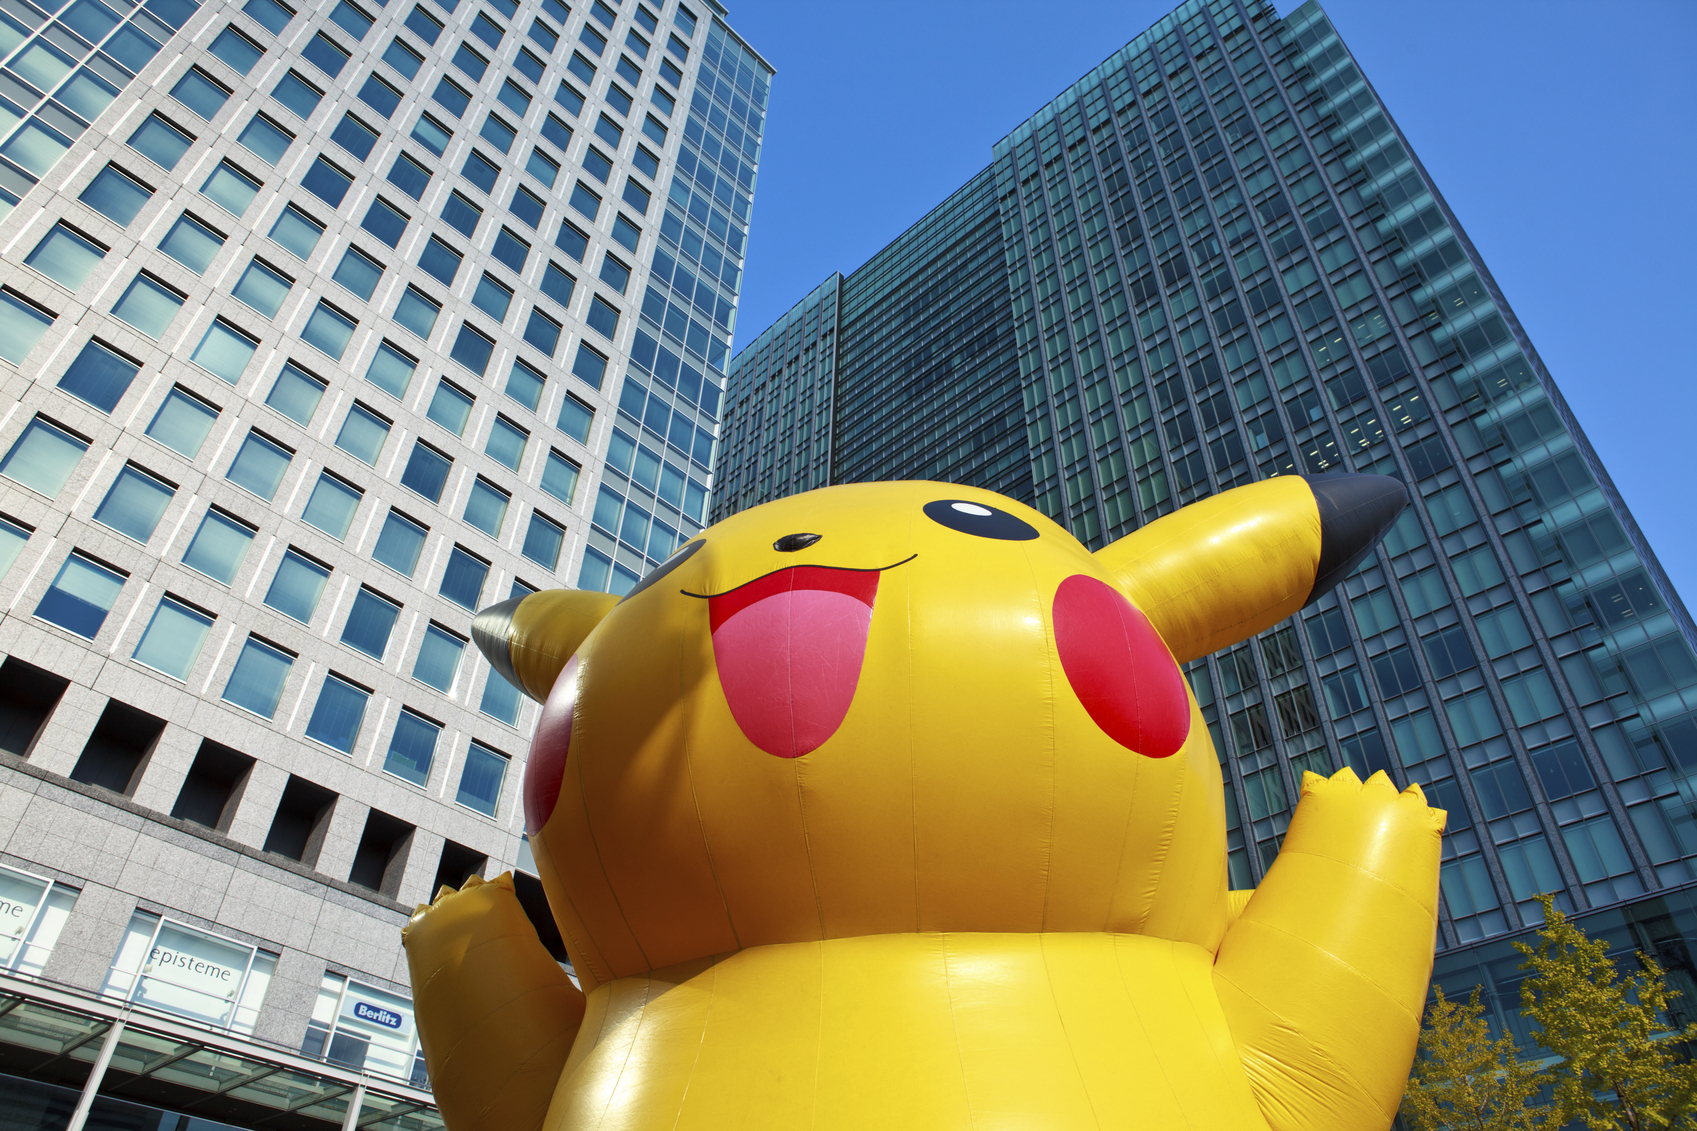 PokéMon Go: How to Keep Your Kids and Your Data Safe